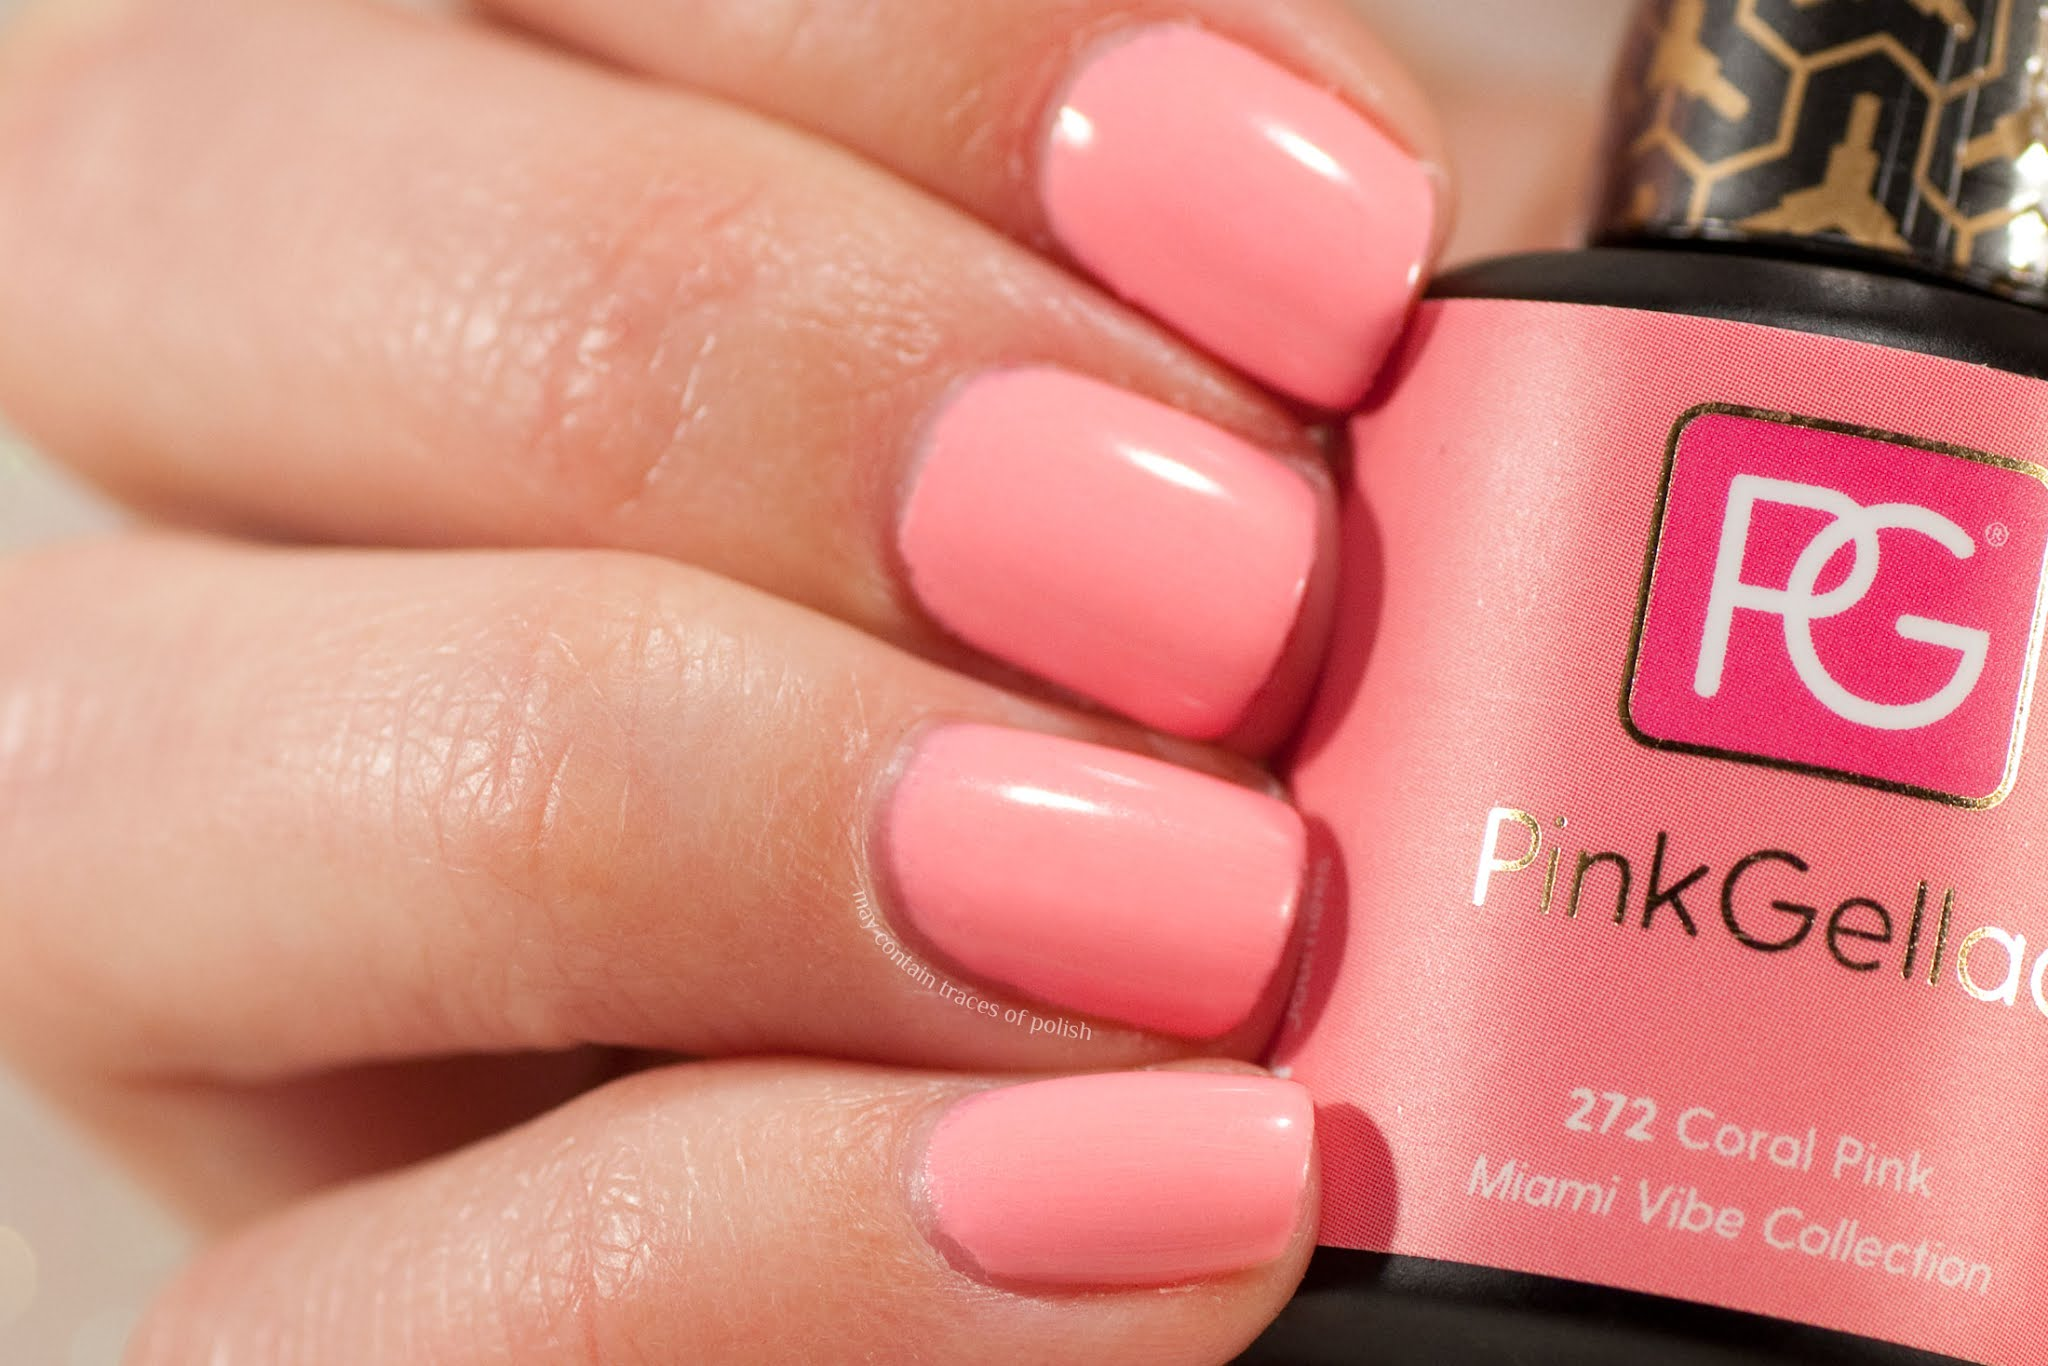 Pink Gellac Swatches - 272 Coral Pink